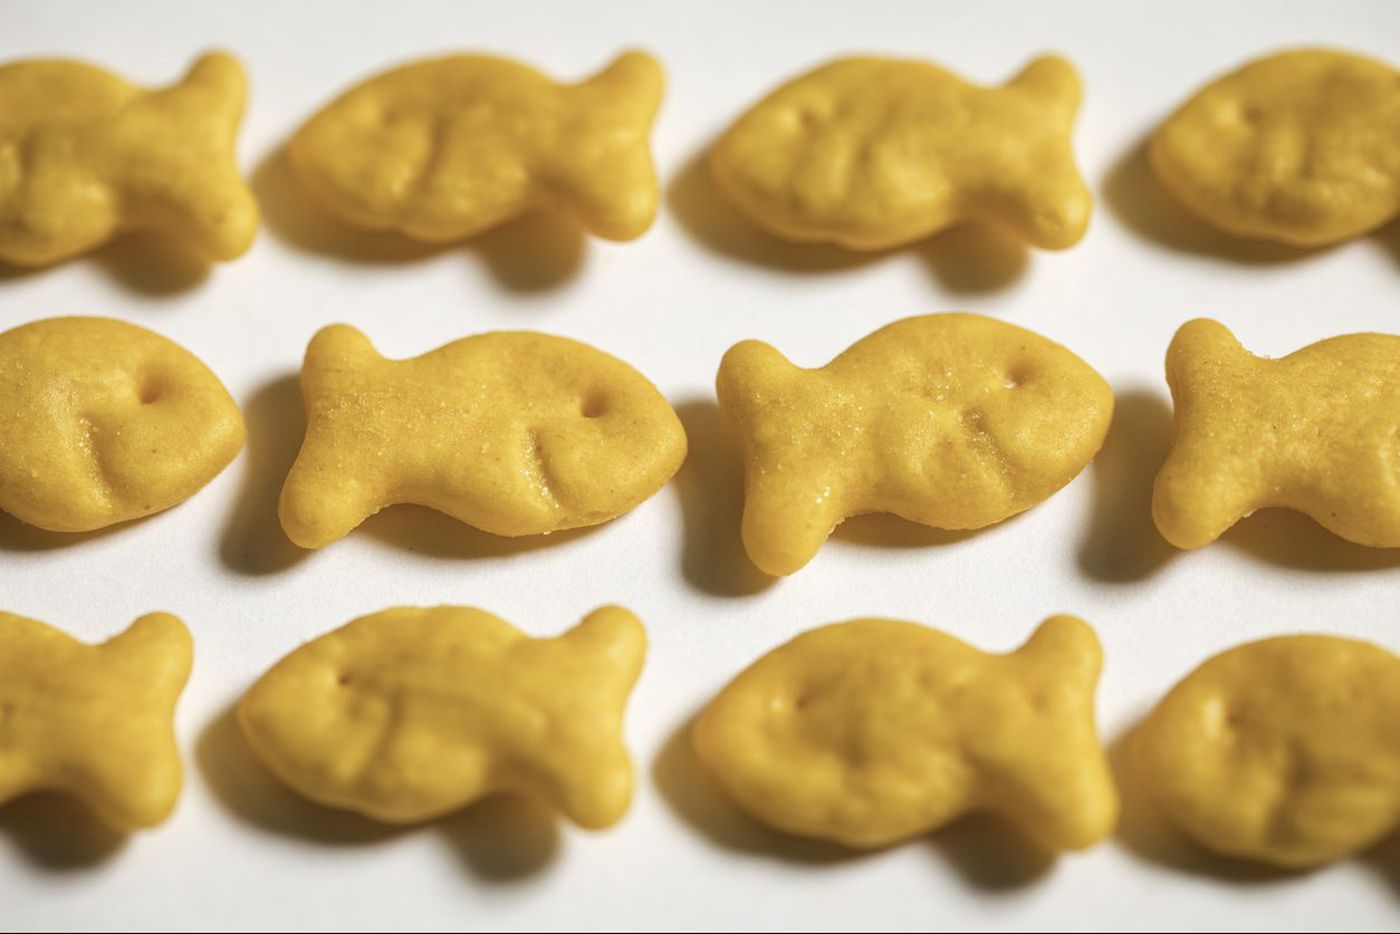 Some Goldfish crackers are recalled over salmonella, upsetting both toddlers and grownups